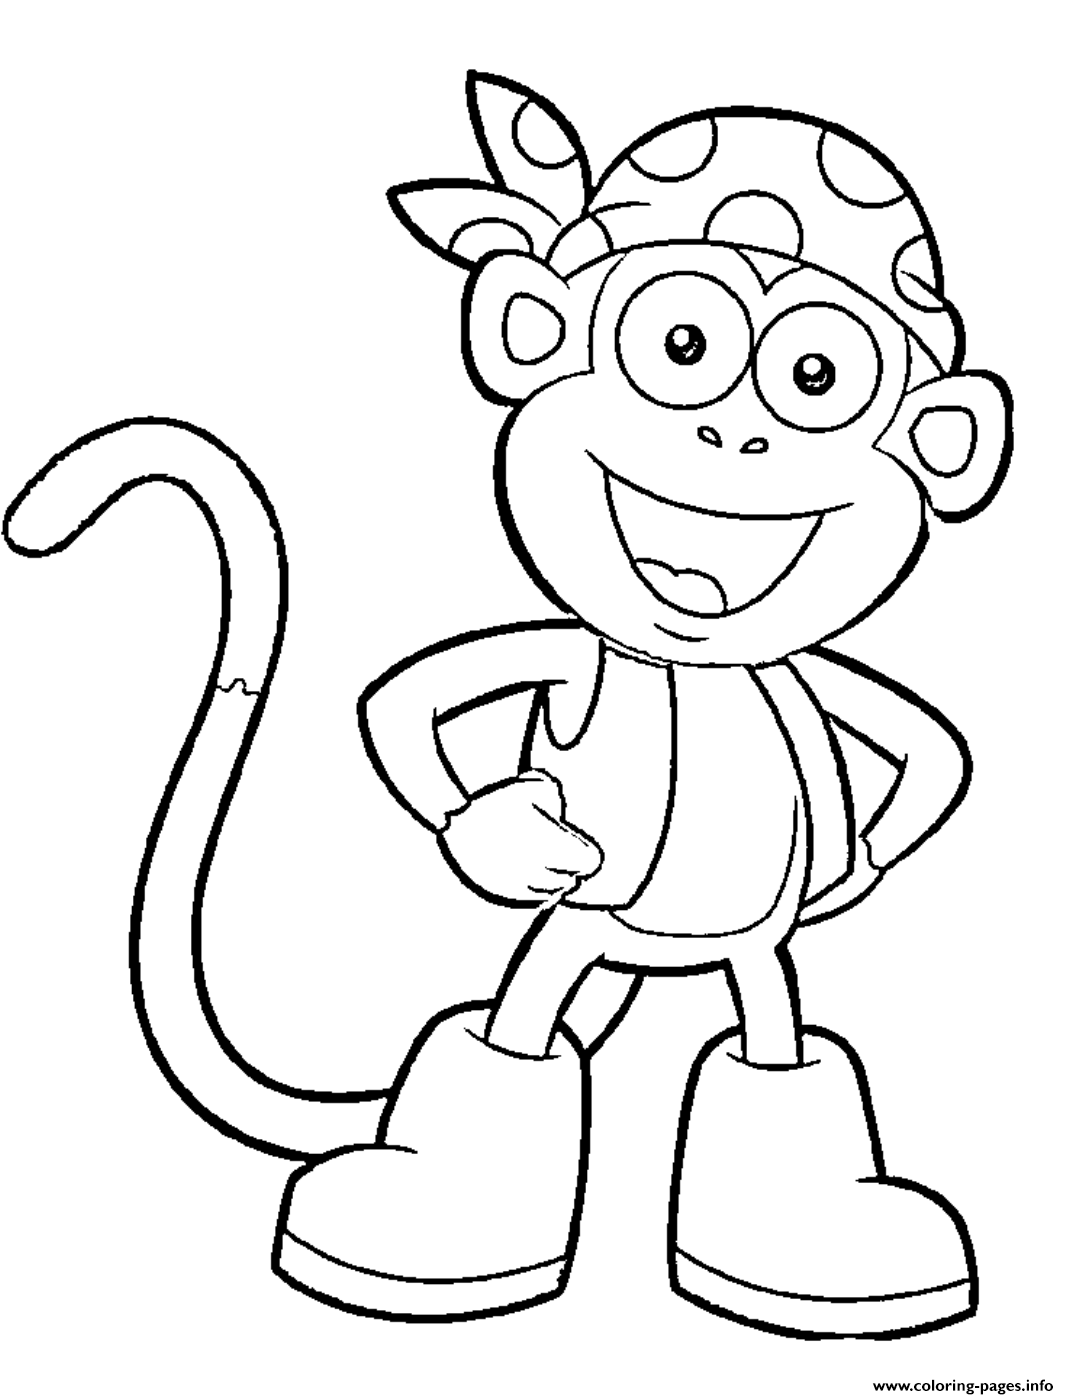 dora coloring pictures dora drawing pictures at getdrawings free download pictures dora coloring